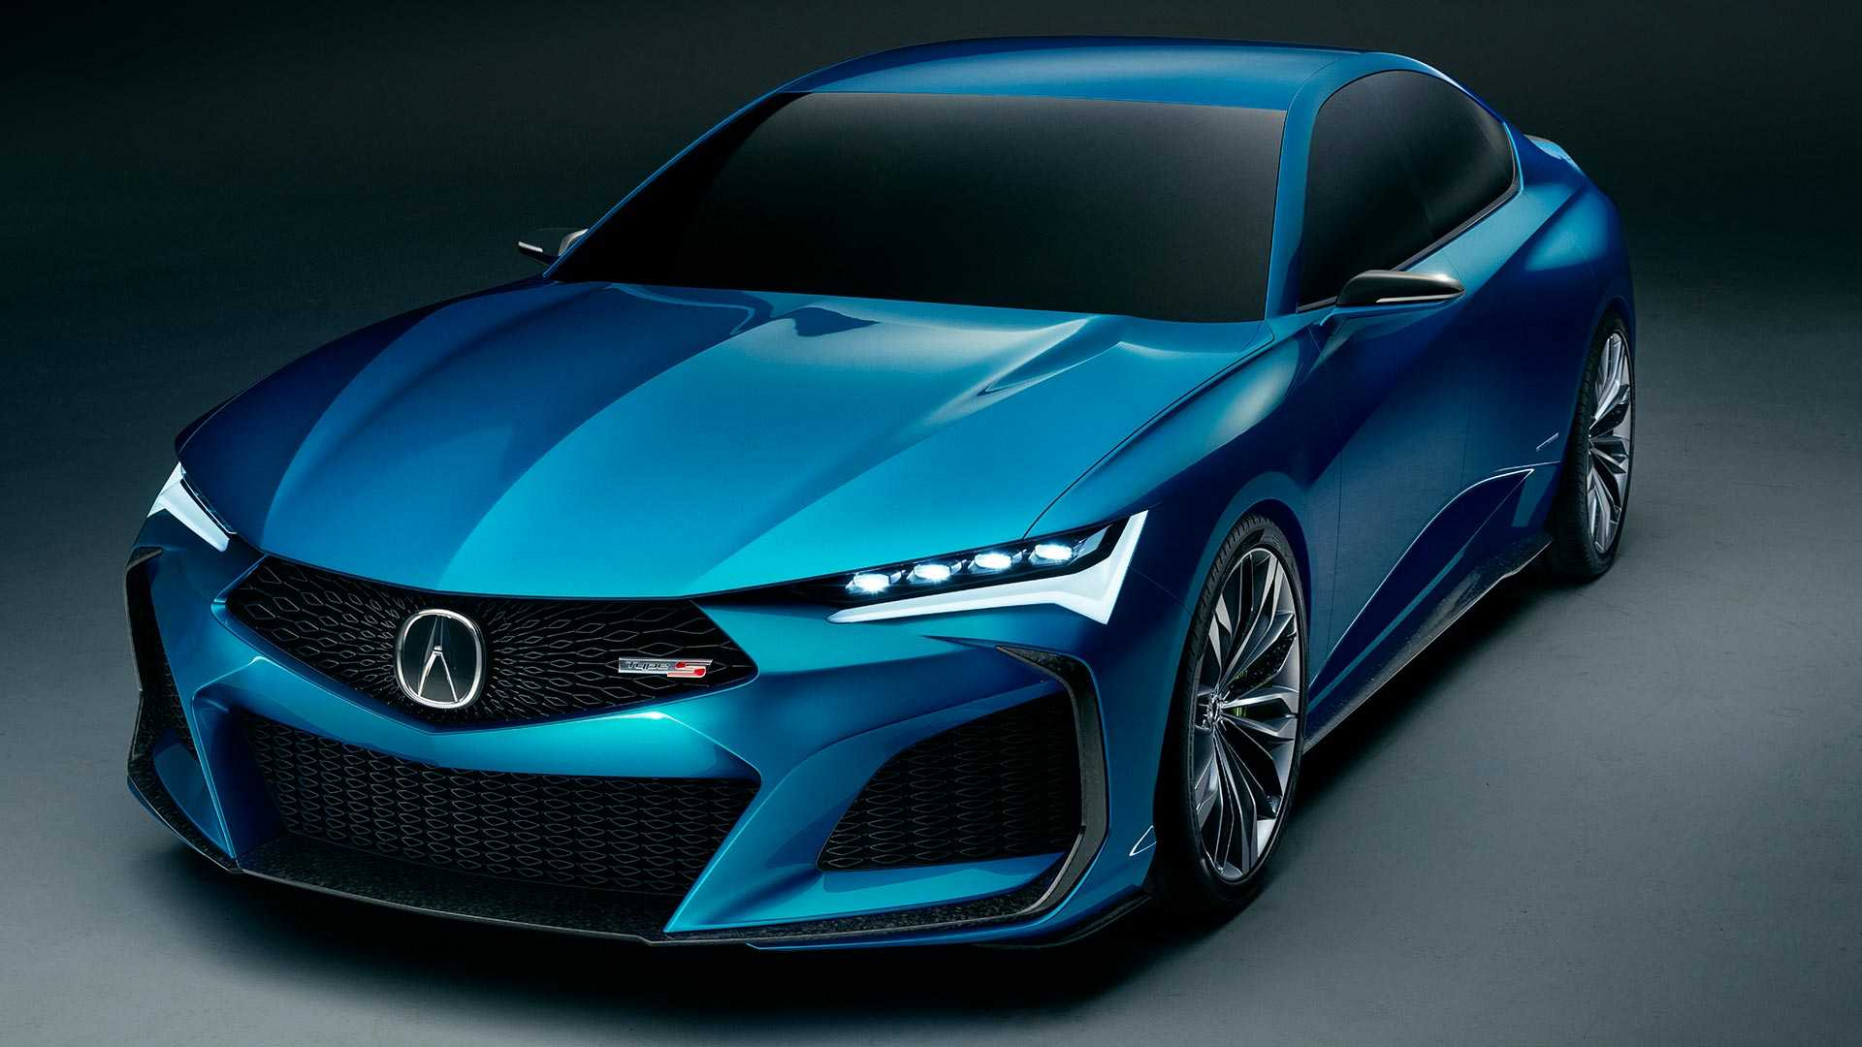 Acura Type S Concept Debuts As Sporty Vision Of Four-Door Future - acura coupe 2020